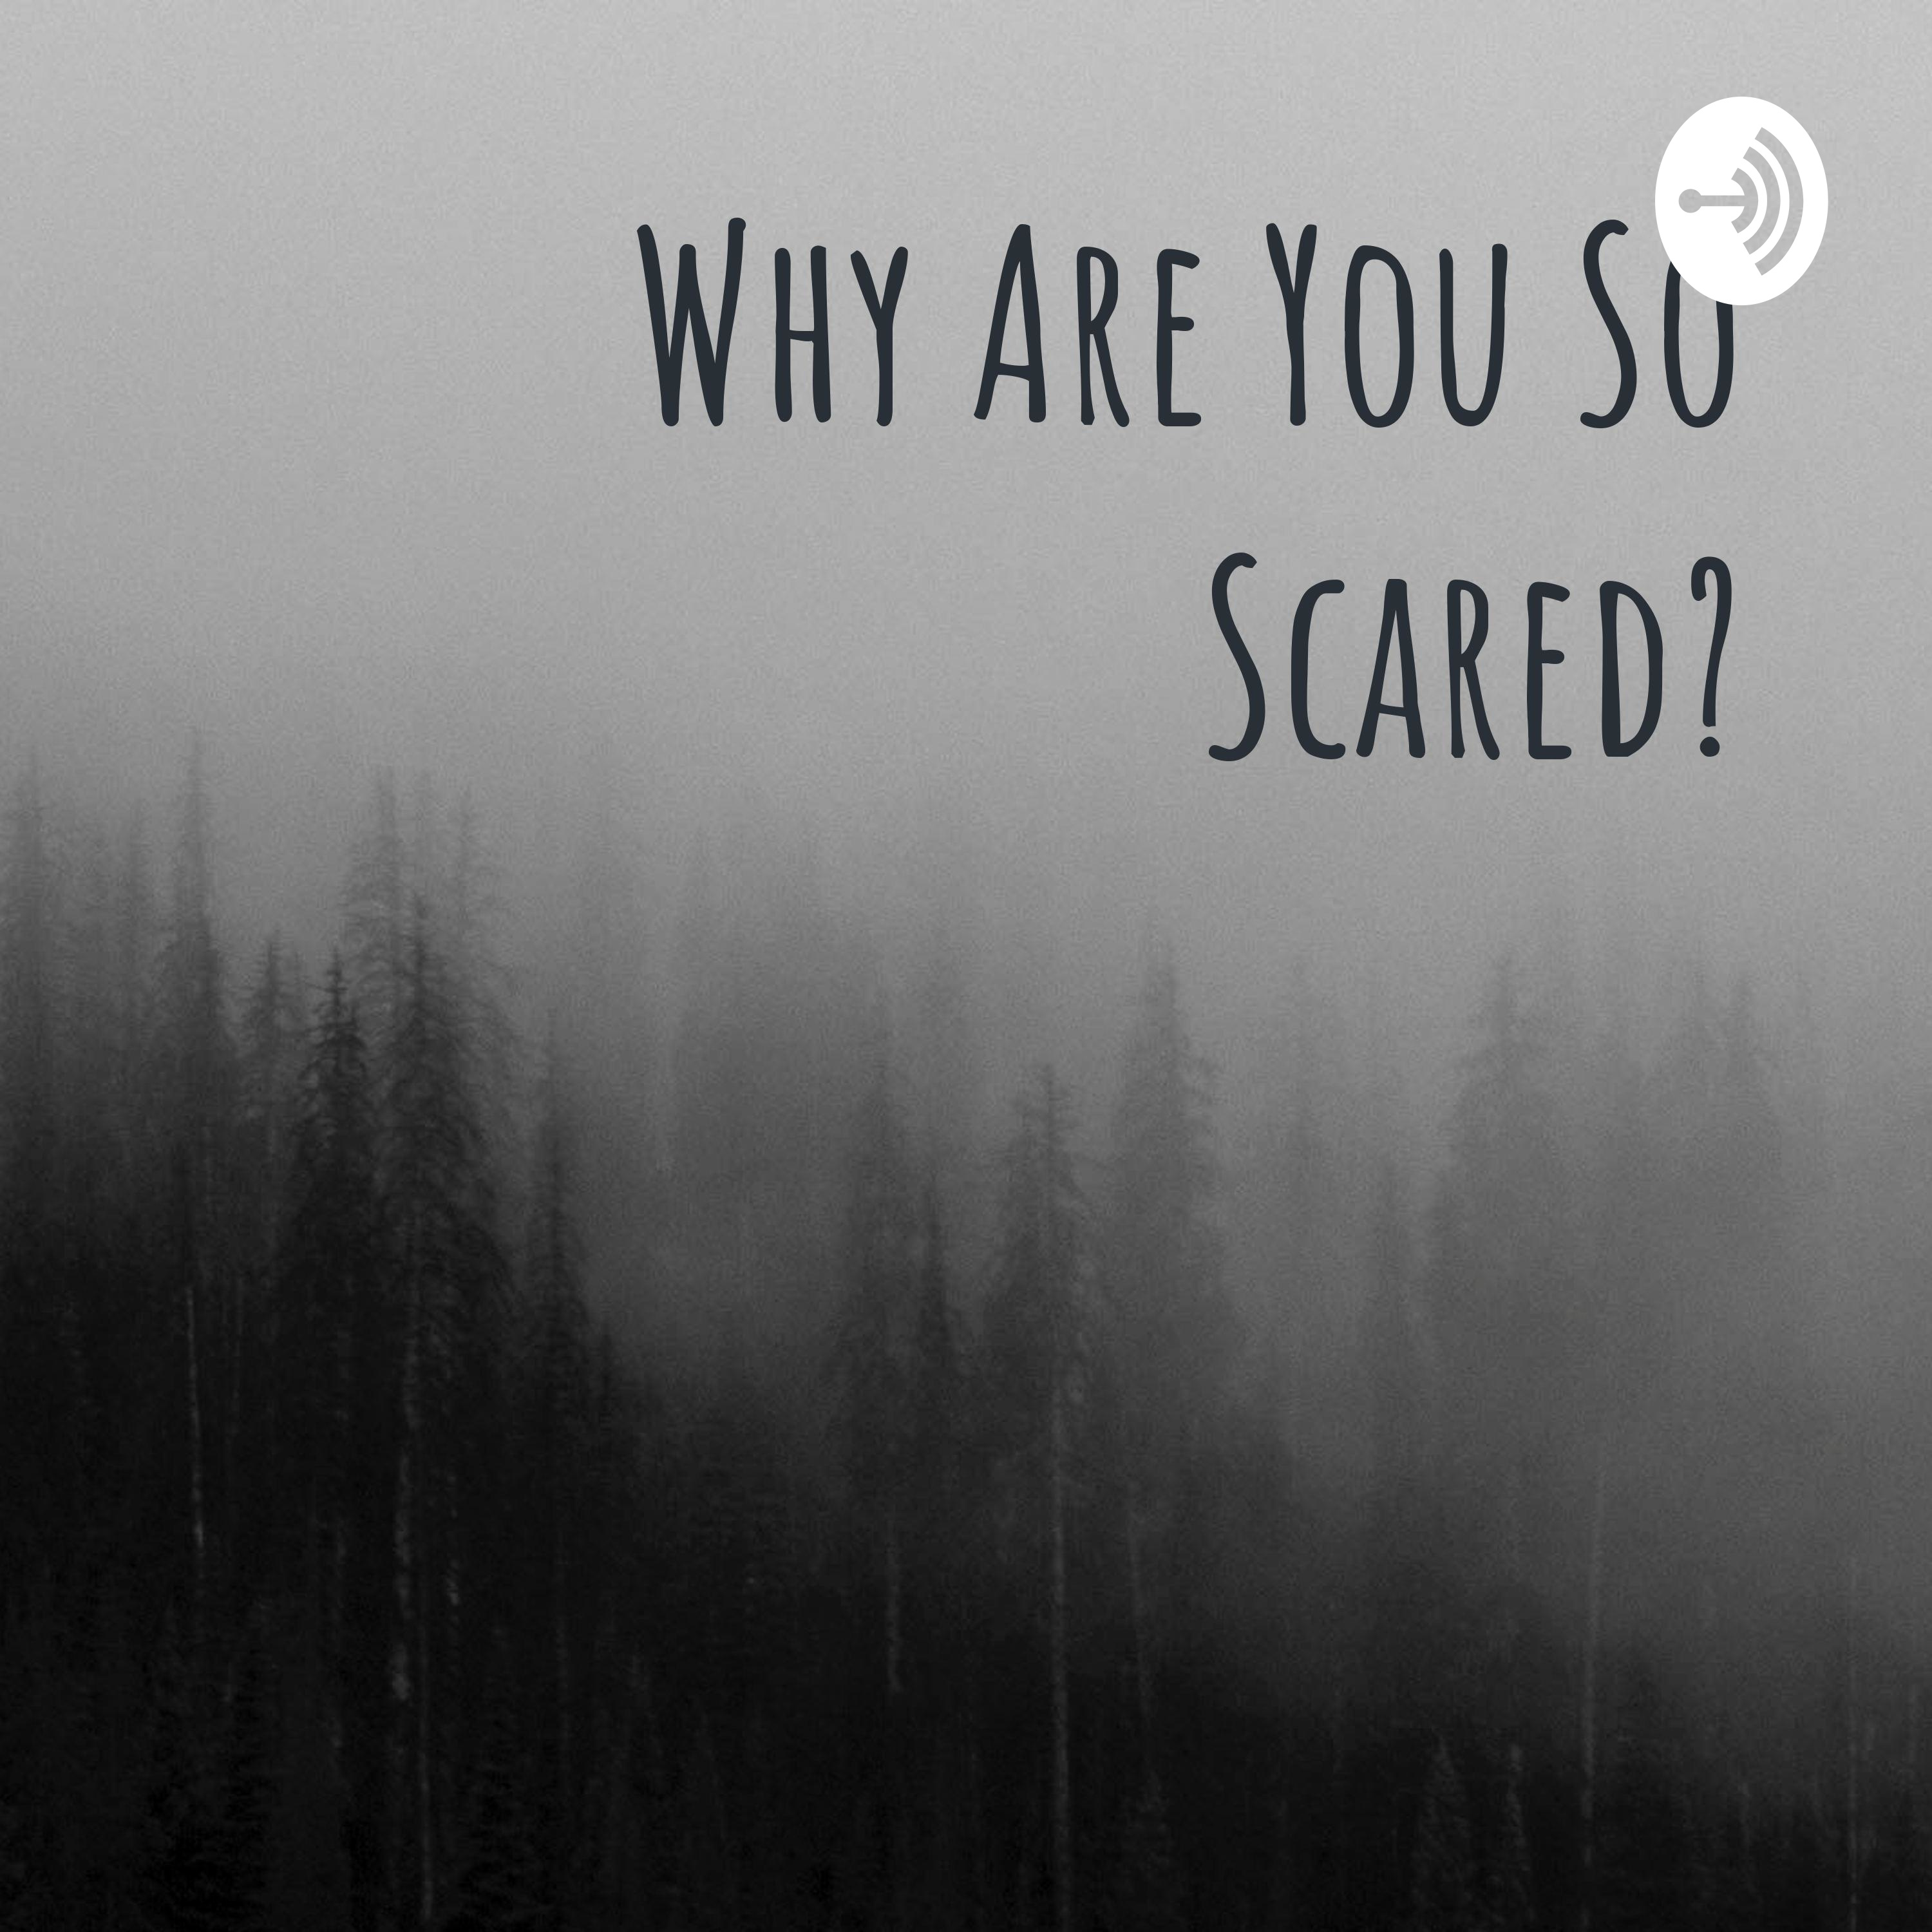 Why Are You So Scared?